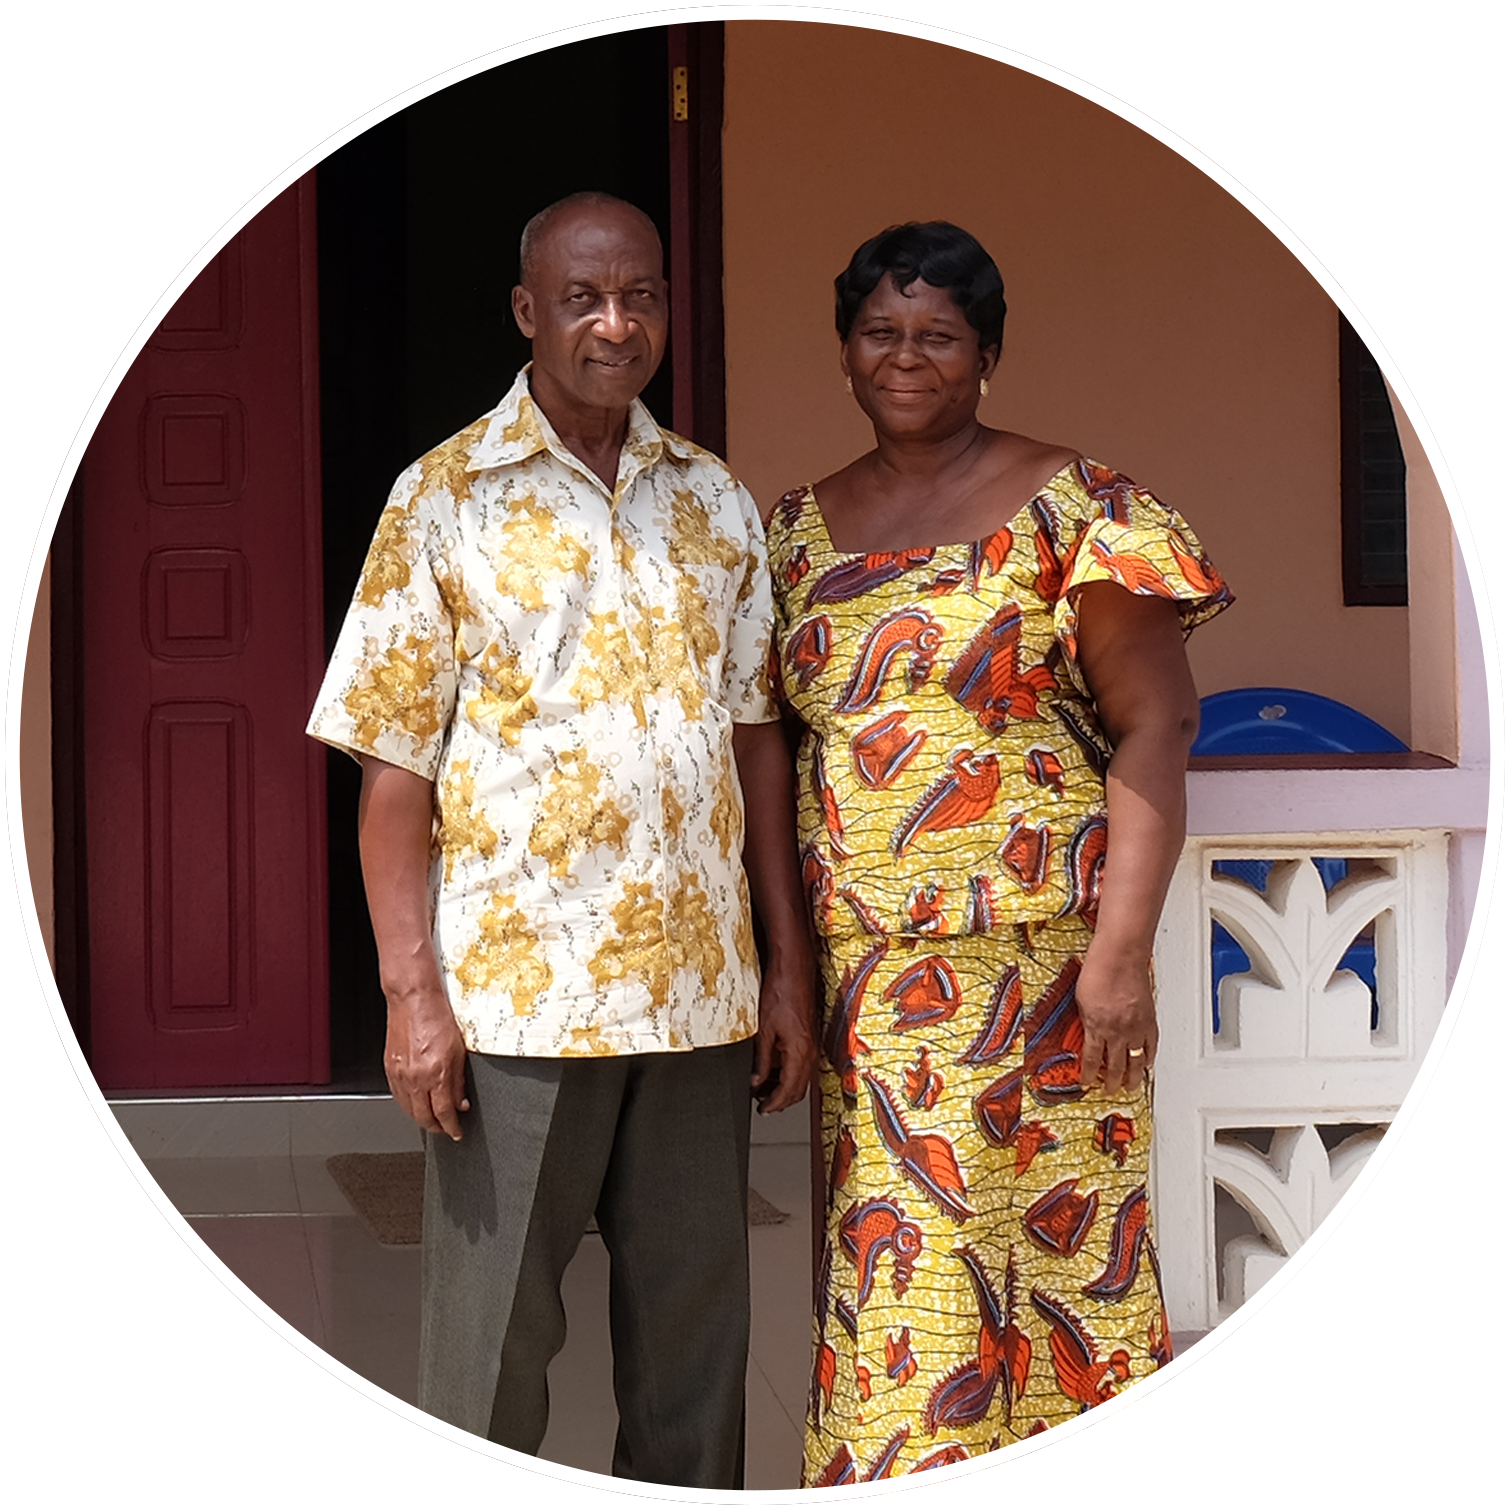 Bernard & Celestine - Bernard & Celestine are our in-country directors, responsible for overseeing everything from finances and building repairs, to spiritual growth and maturation of the girls. Unofficially, they function as grandparents to all at the Yellow House. They have been a part of Eight Oaks since the very beginning and the success of our organization is owed in large part to their dedication and passion for this work.